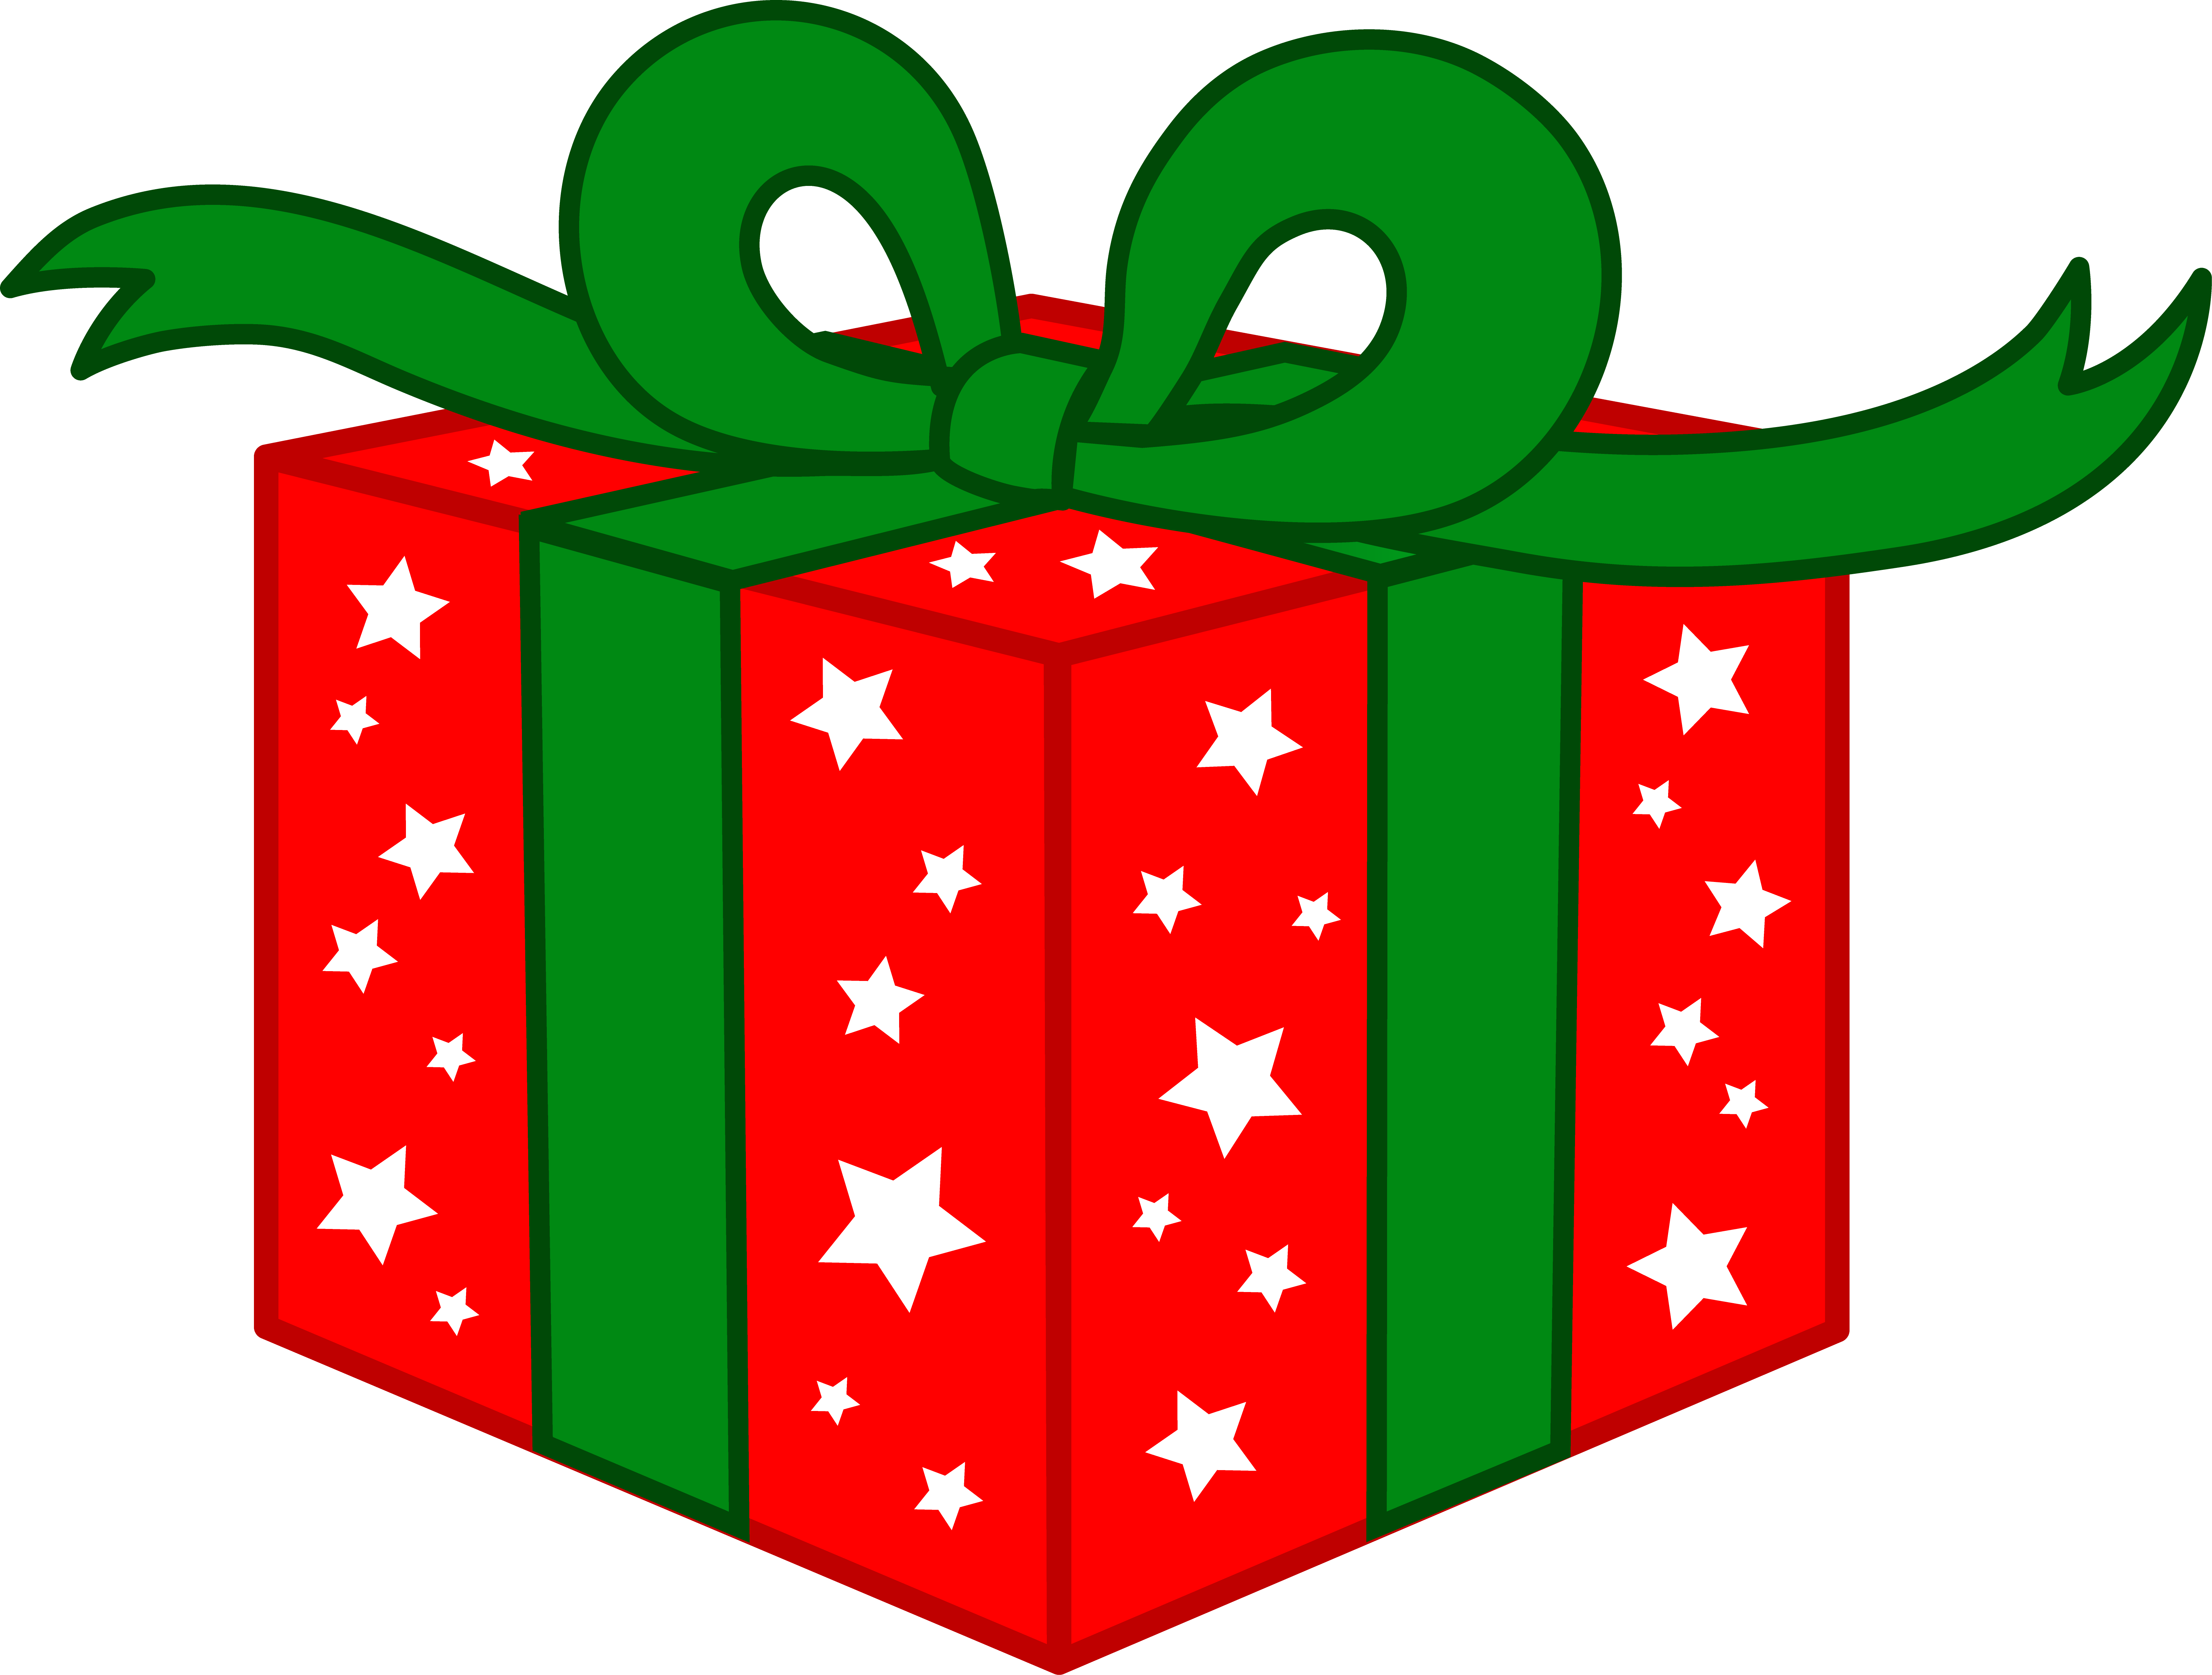 Christmas Clip Art Free Clipart Images 4-Christmas clip art free clipart images 4-3